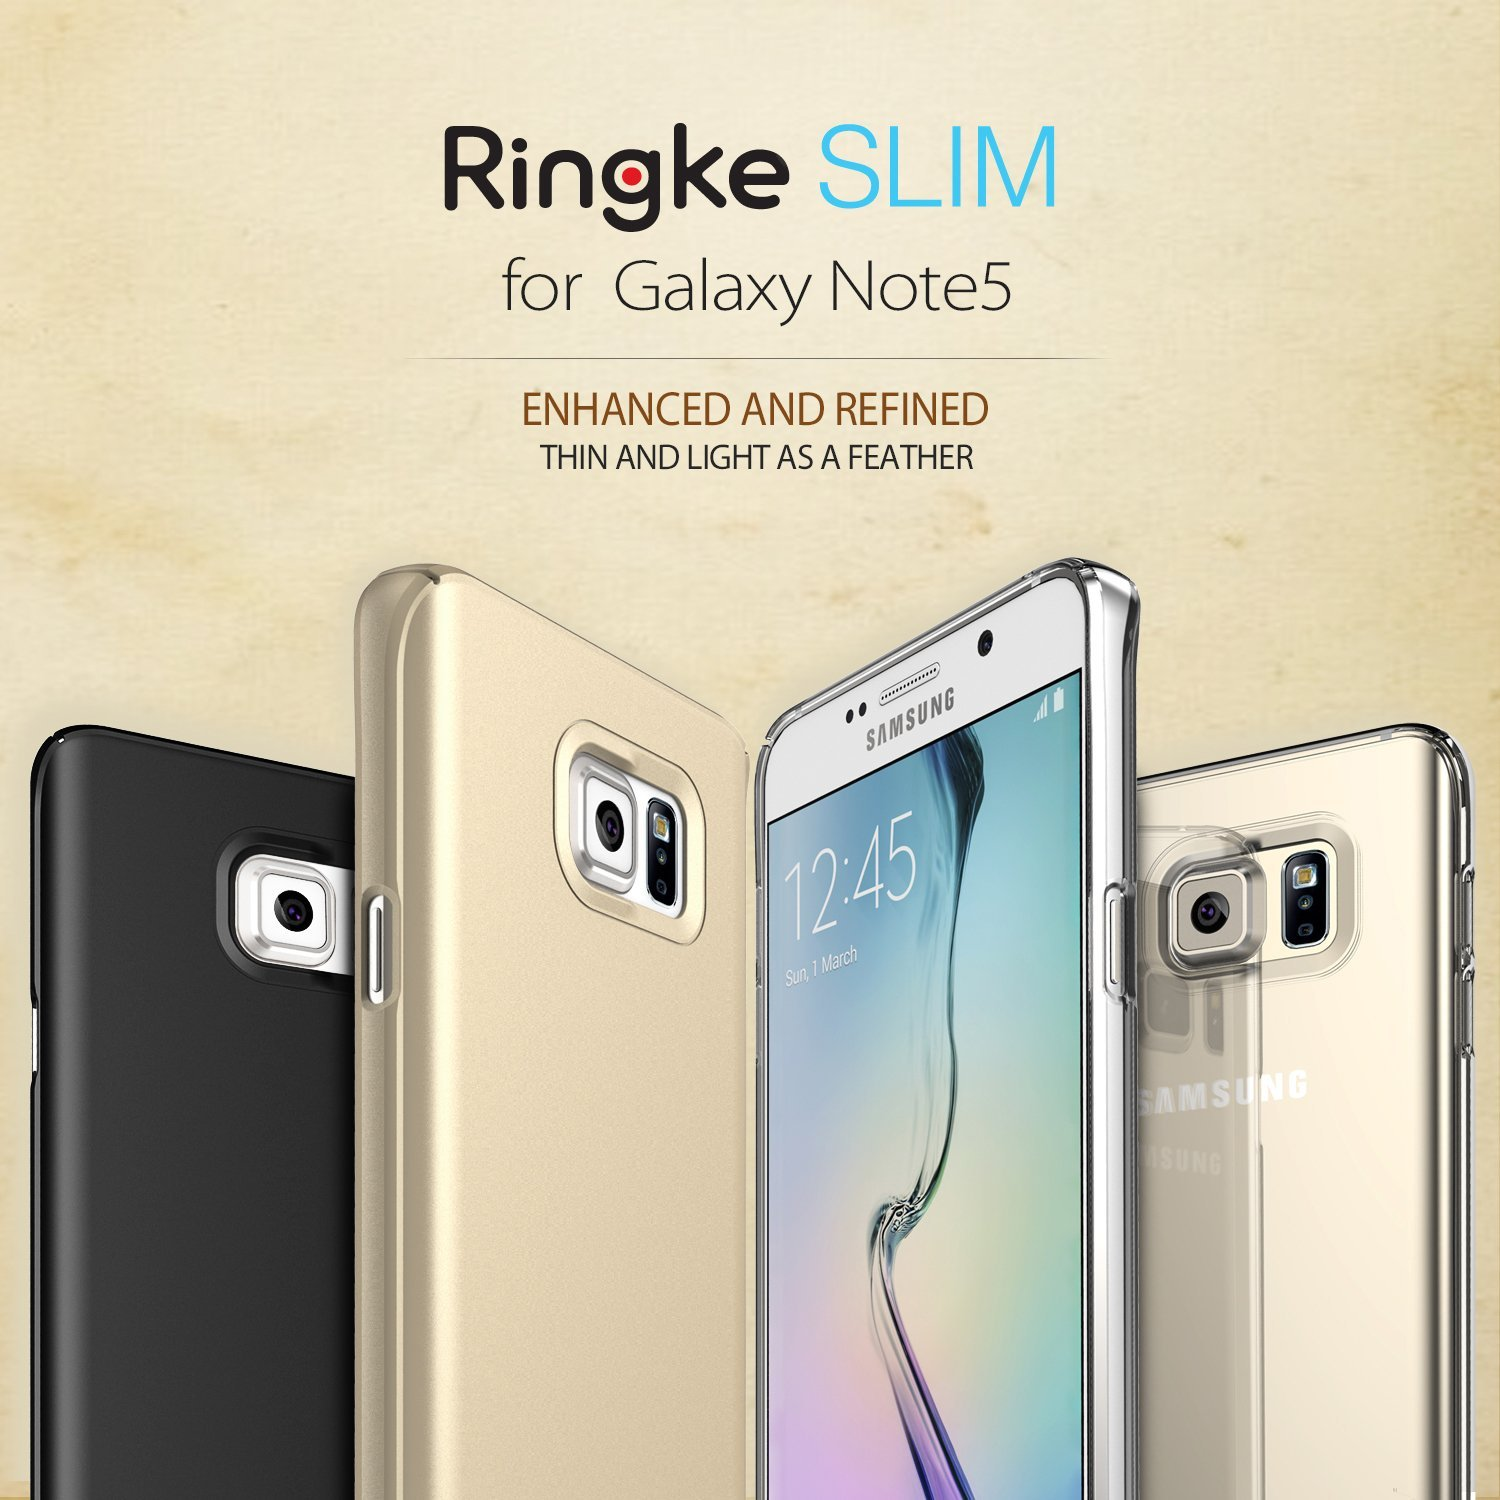 ringke slim samsung galaxy note 5